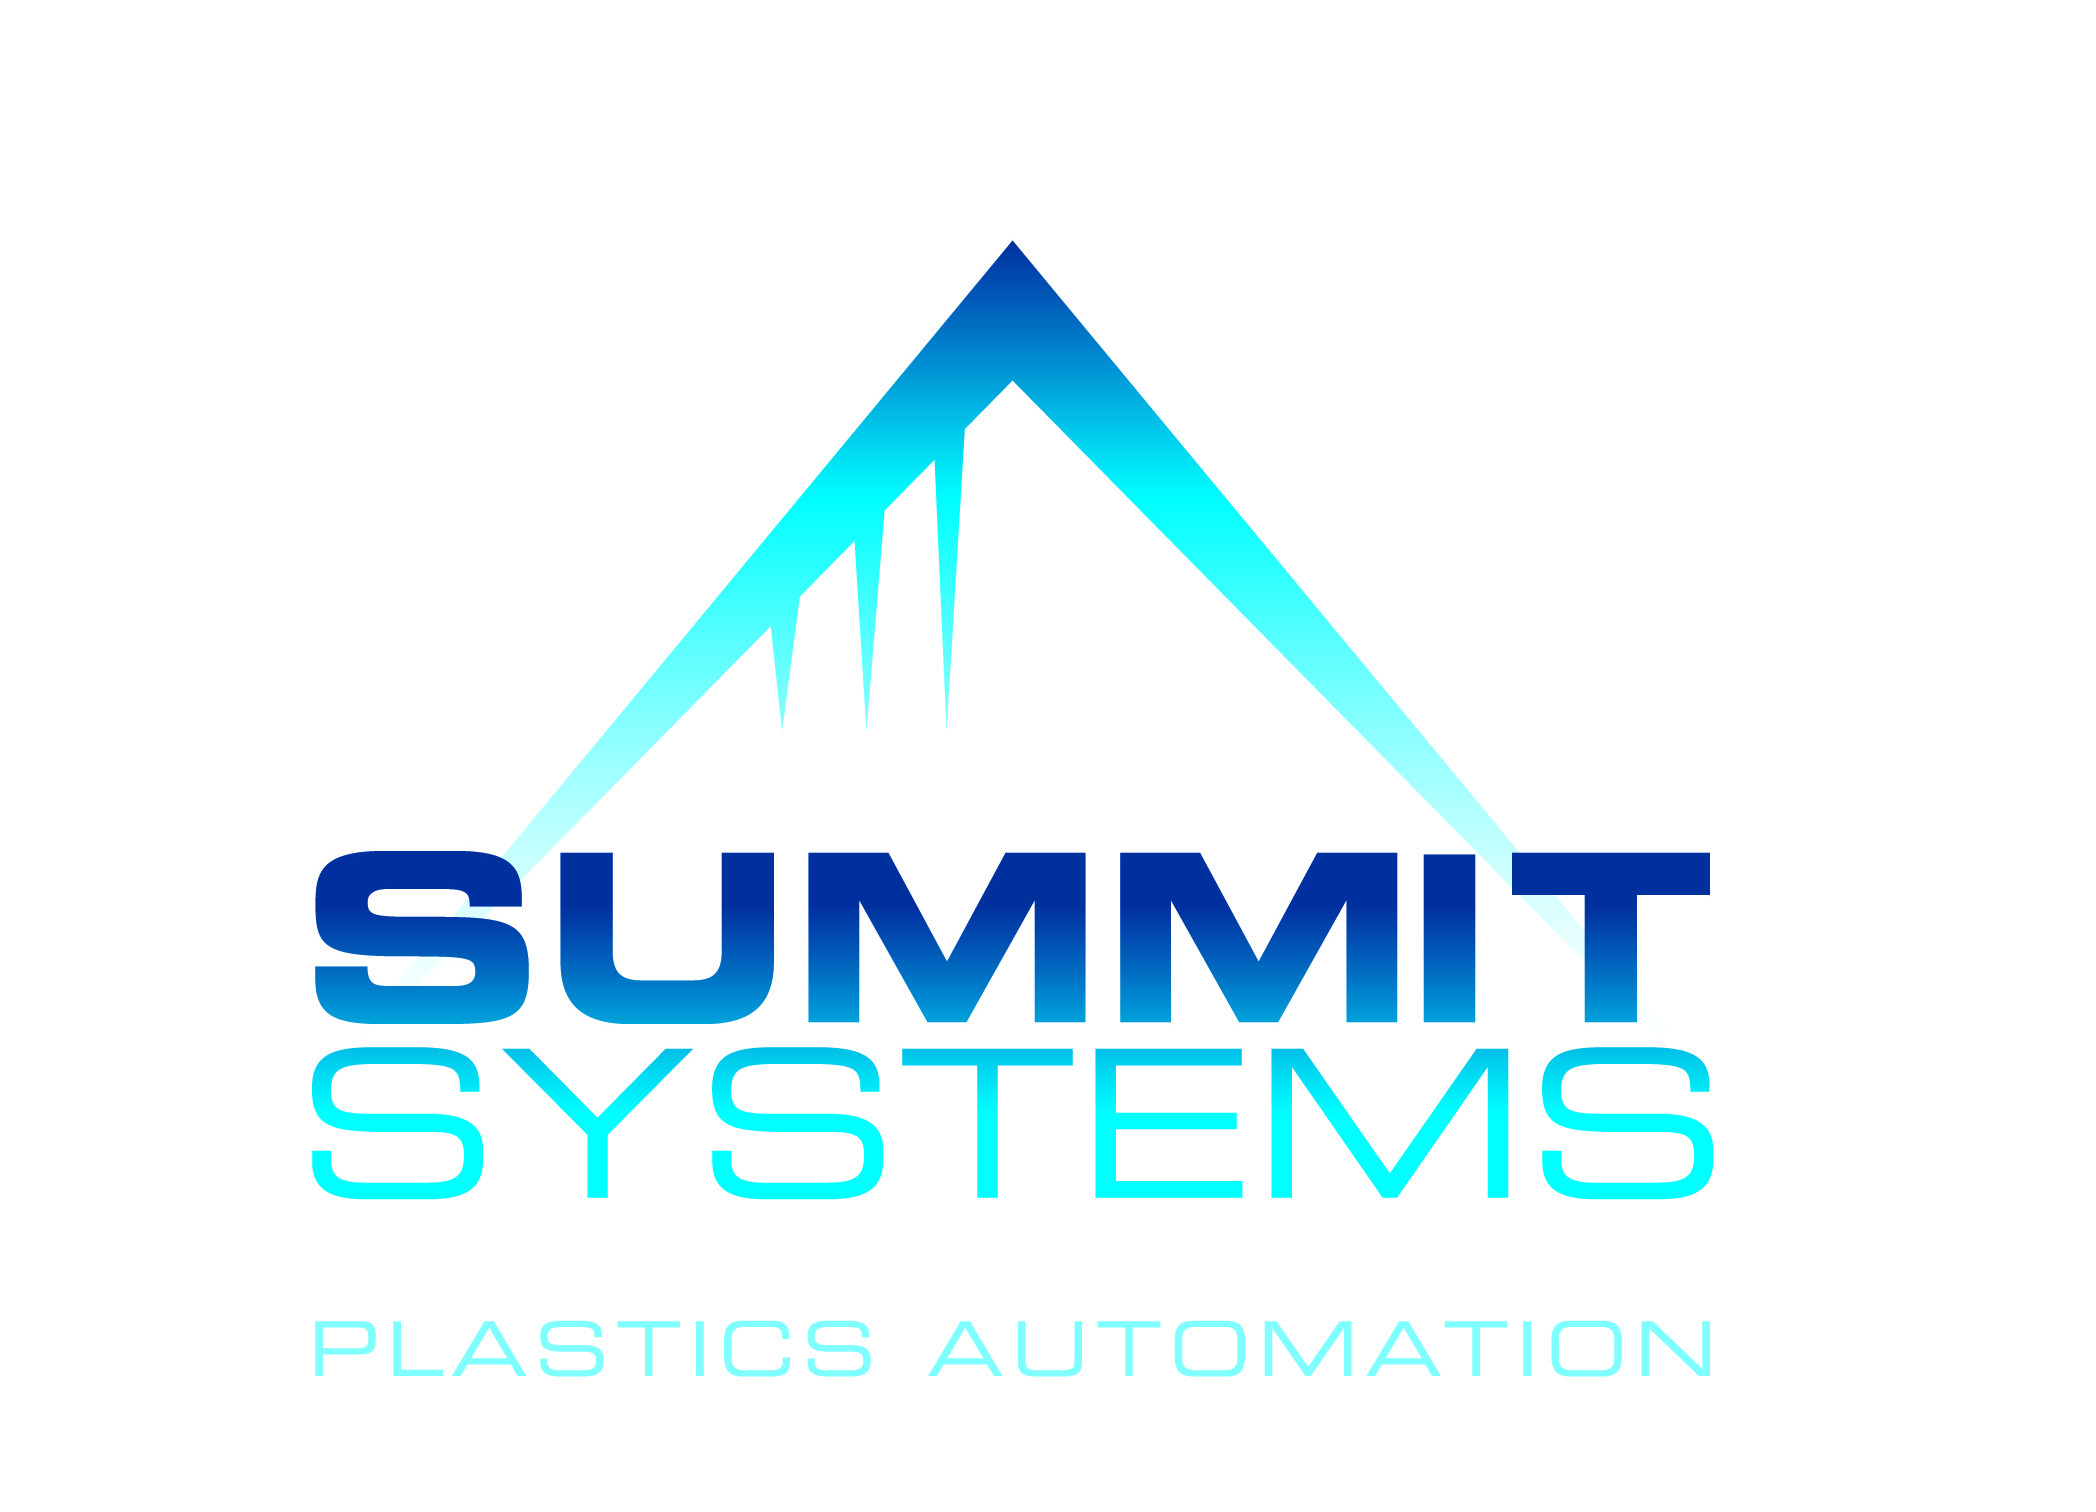 Summit systems plastic material storage bins & material silos suppliers